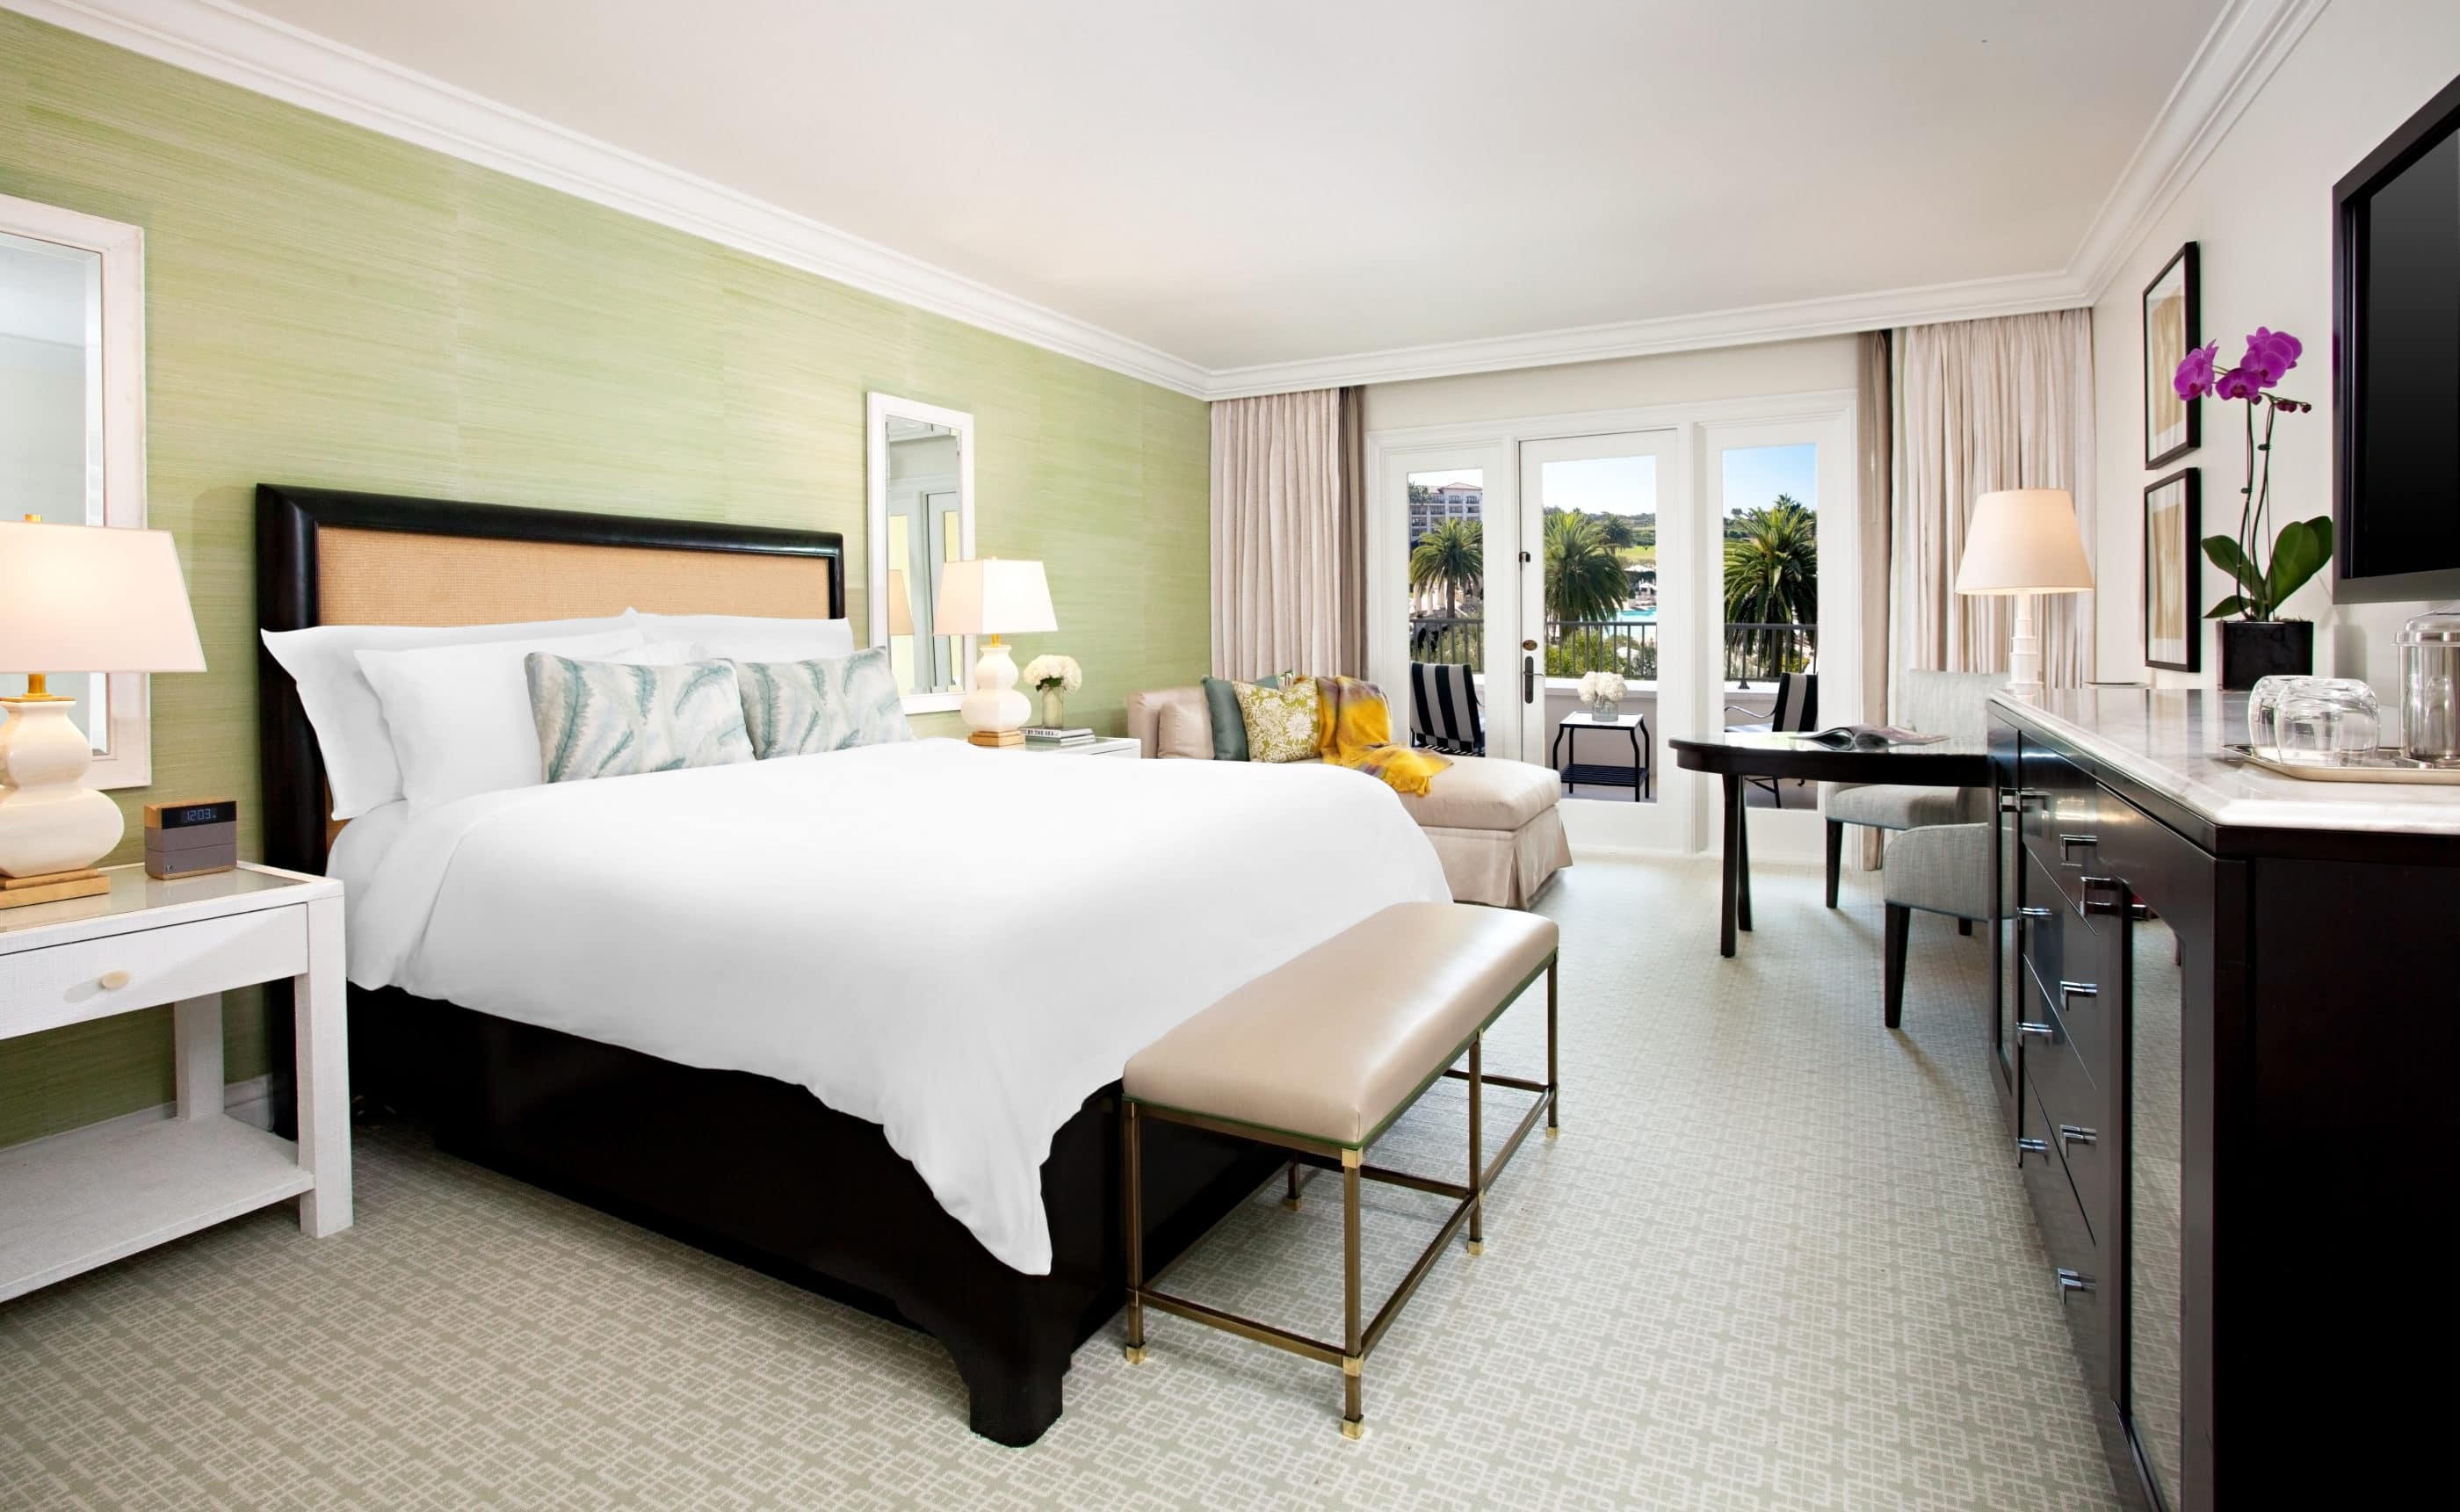 The interior of a Signature King room at Monarch beach resort with crisp white sheets, and coastal colored accents.